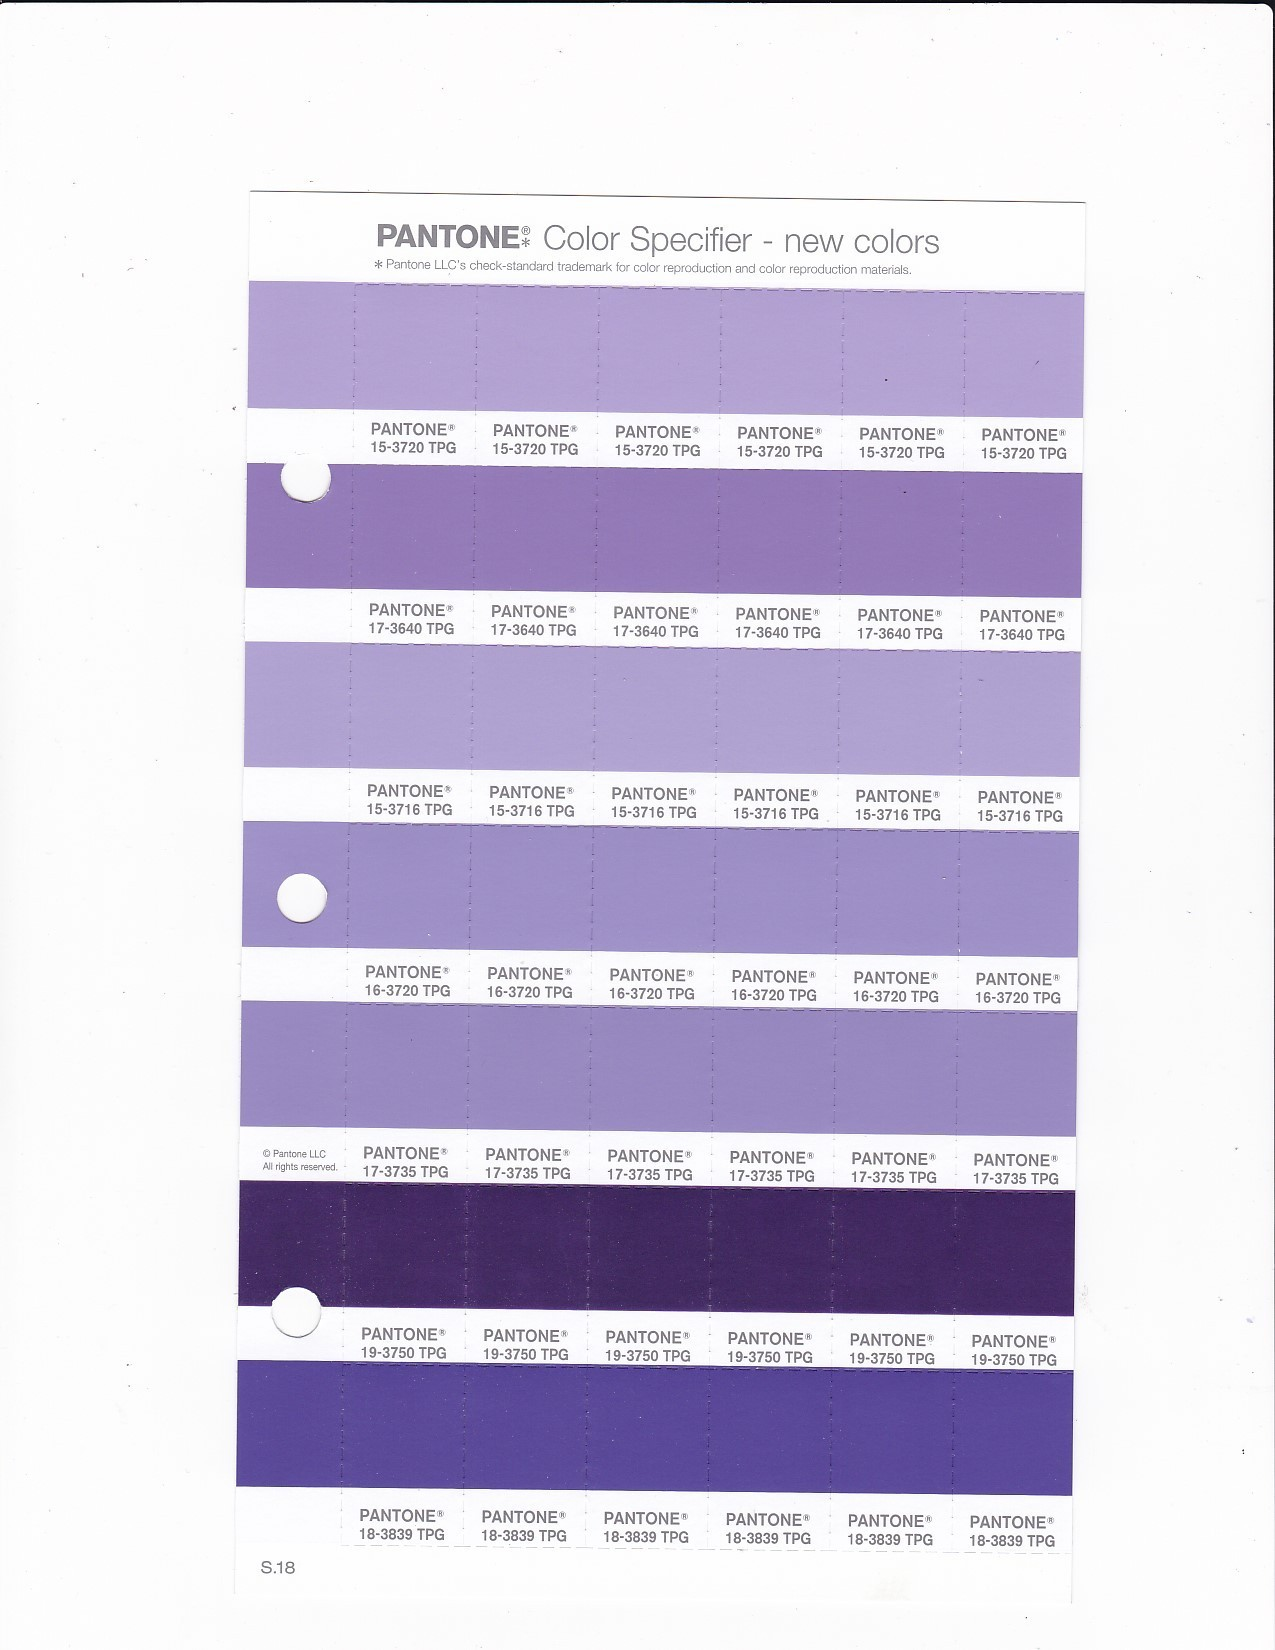 PANTONE 15 3716 TPG Purple Rose Replacement Page Fashion Home